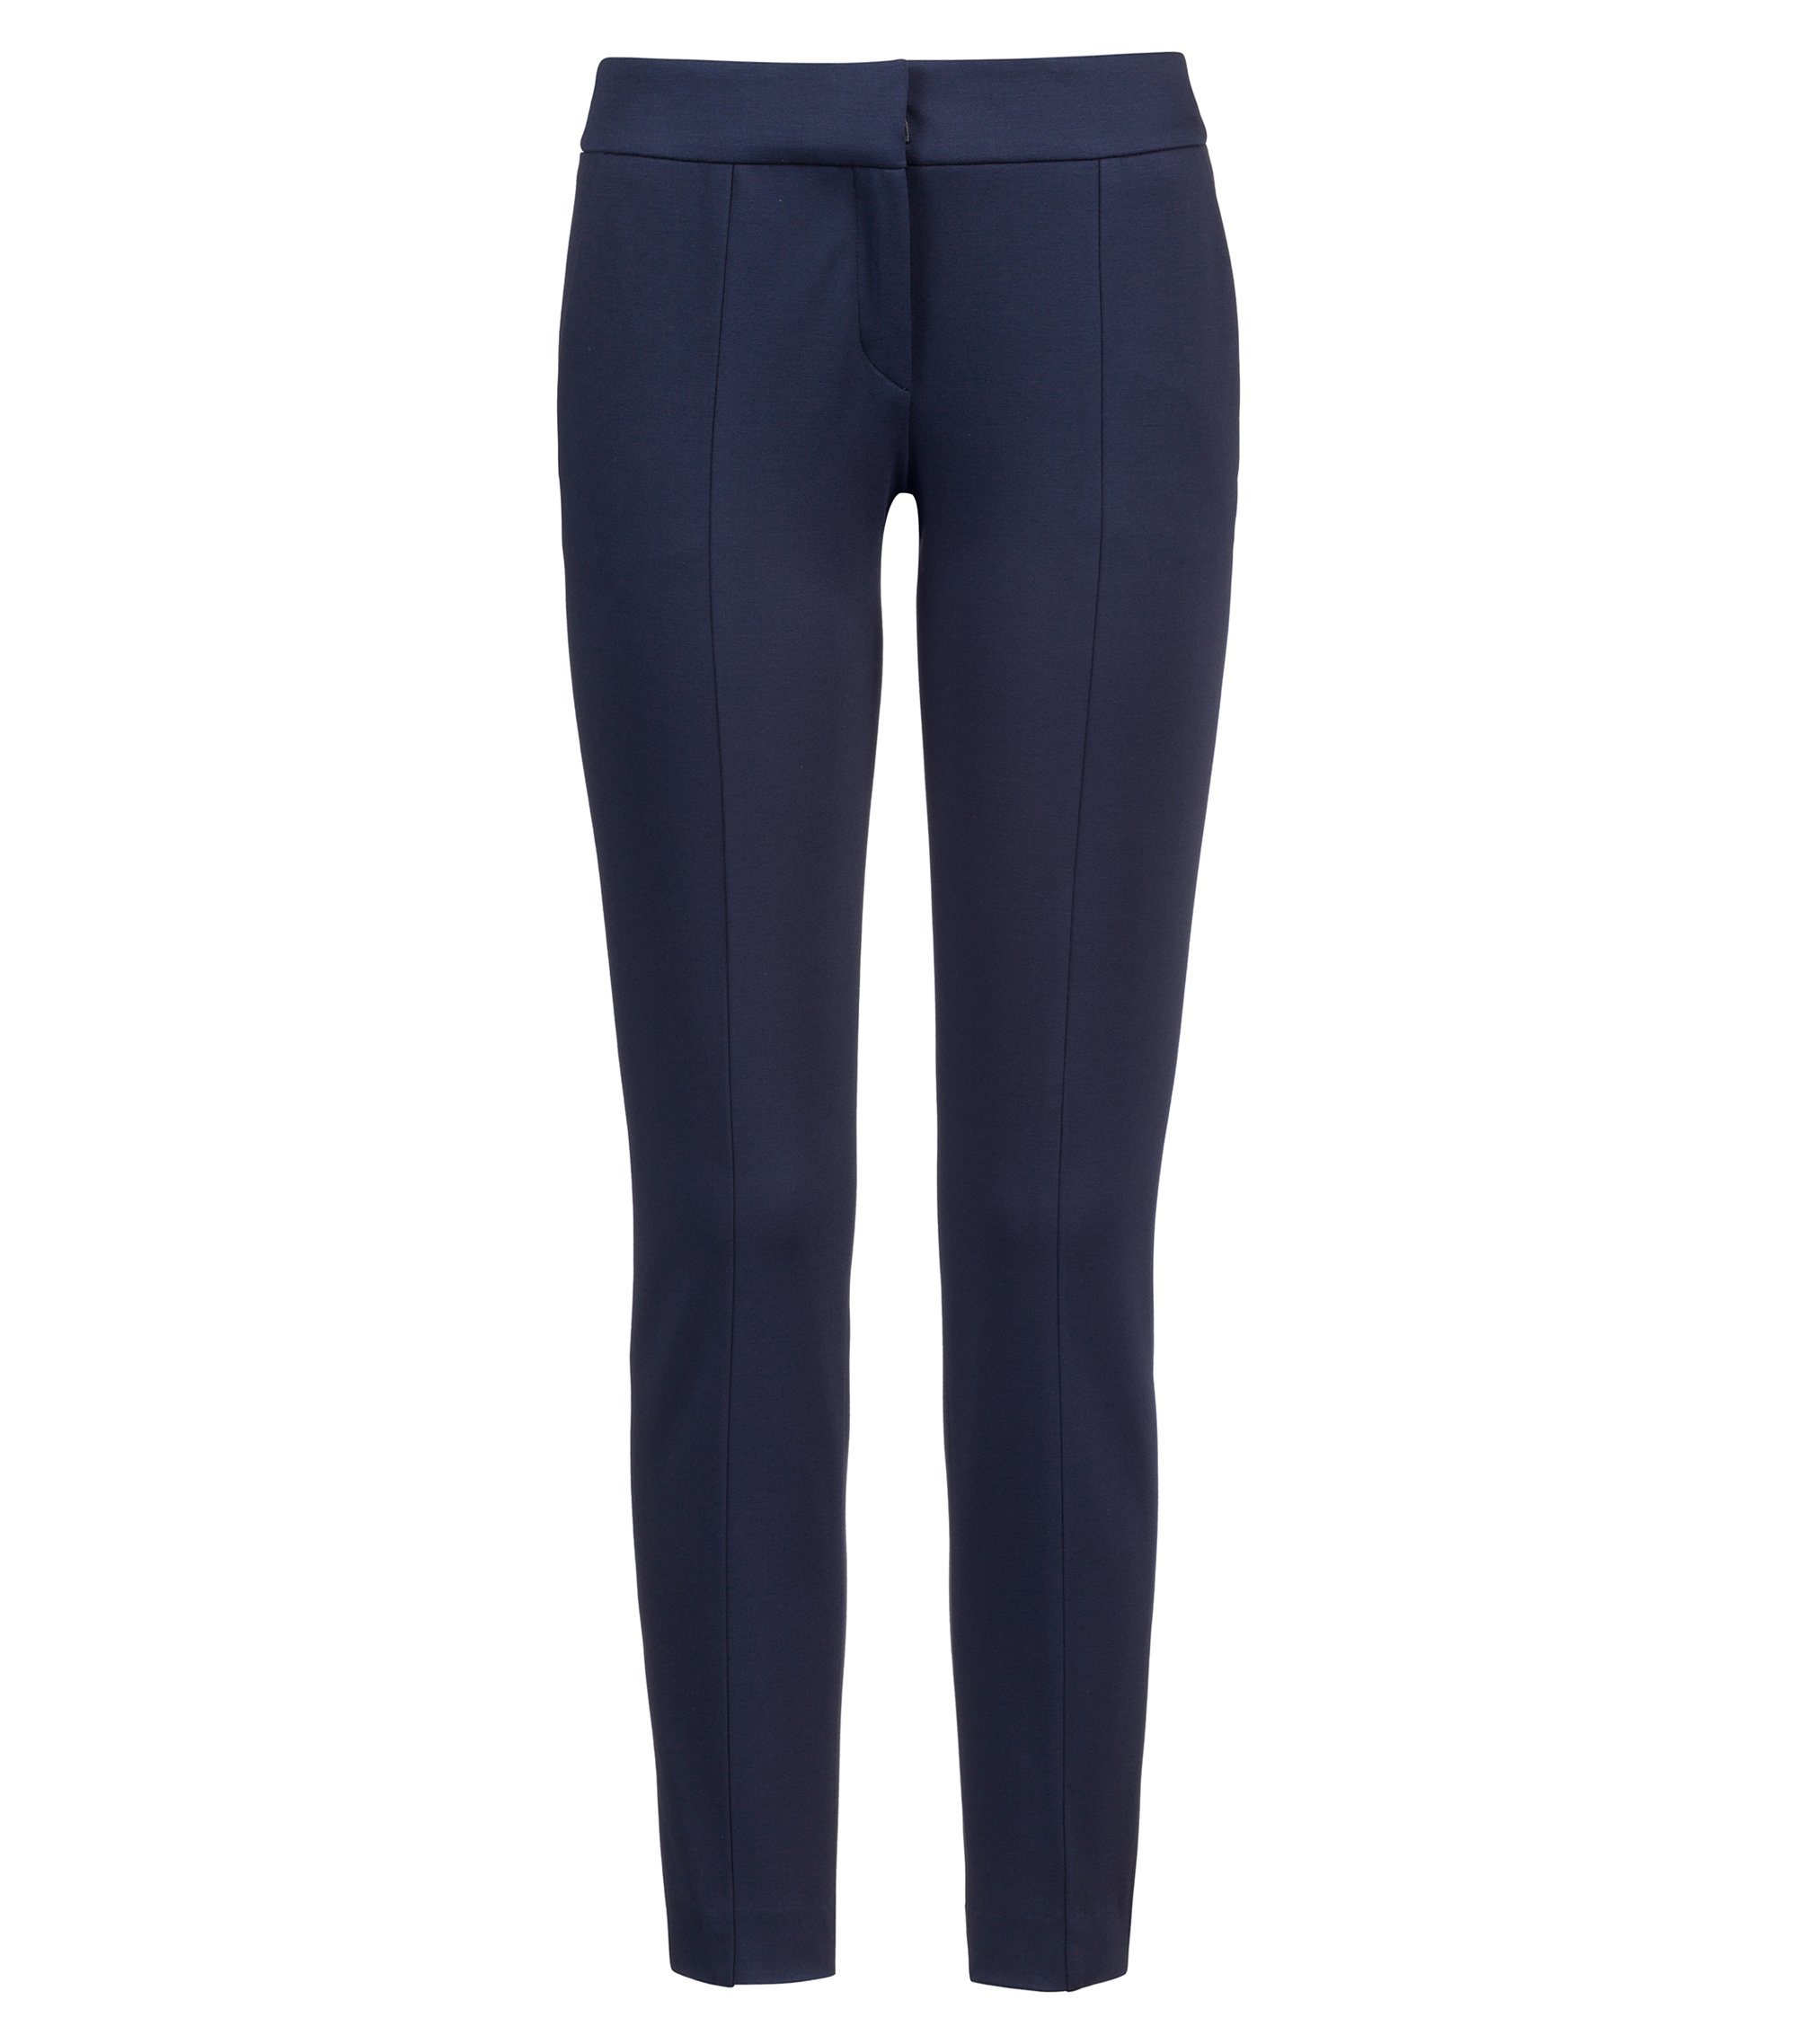 Pantalon Slim Fit raccourci en jersey stretch, Bleu